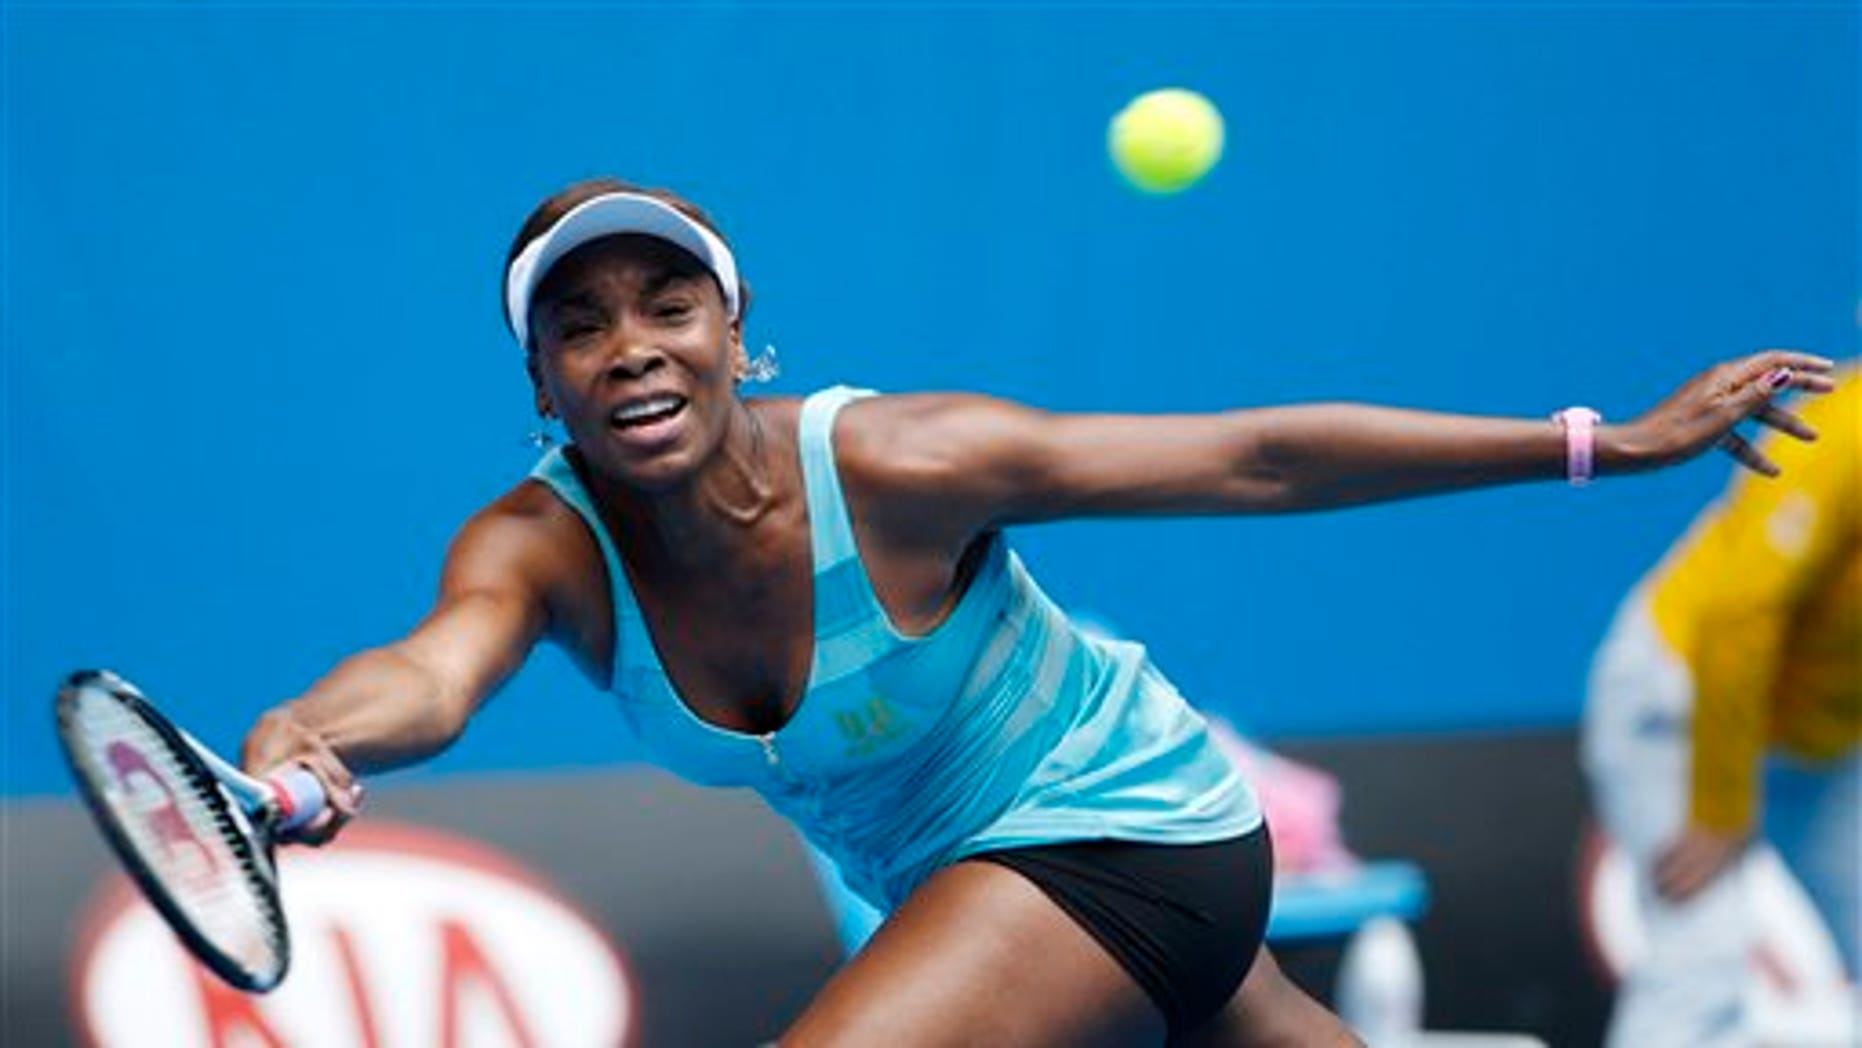 Venus Williams of the U.S. makes a forehand return to Italy's Sara Errani during their first round match at the Australian Open tennis championships in Melbourne, Australia, Monday, Jan. 17, 2011.   (AP Photo/Rob Griffith)